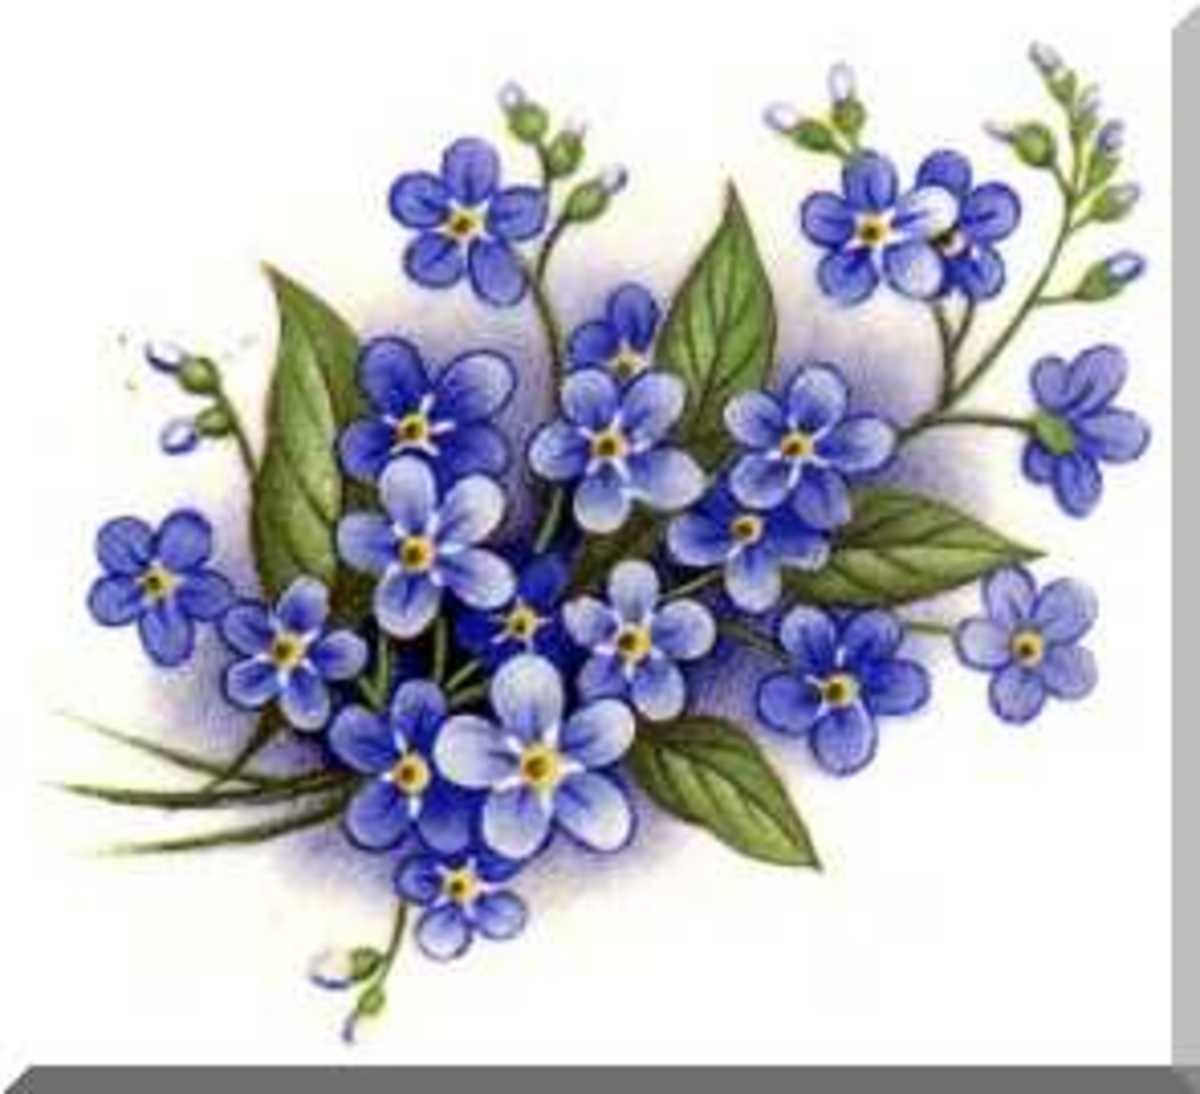 Forget-me-not flowers.  Don't forget to remember Summer and it's promise, it's sandy enjoyable warmth and fun.